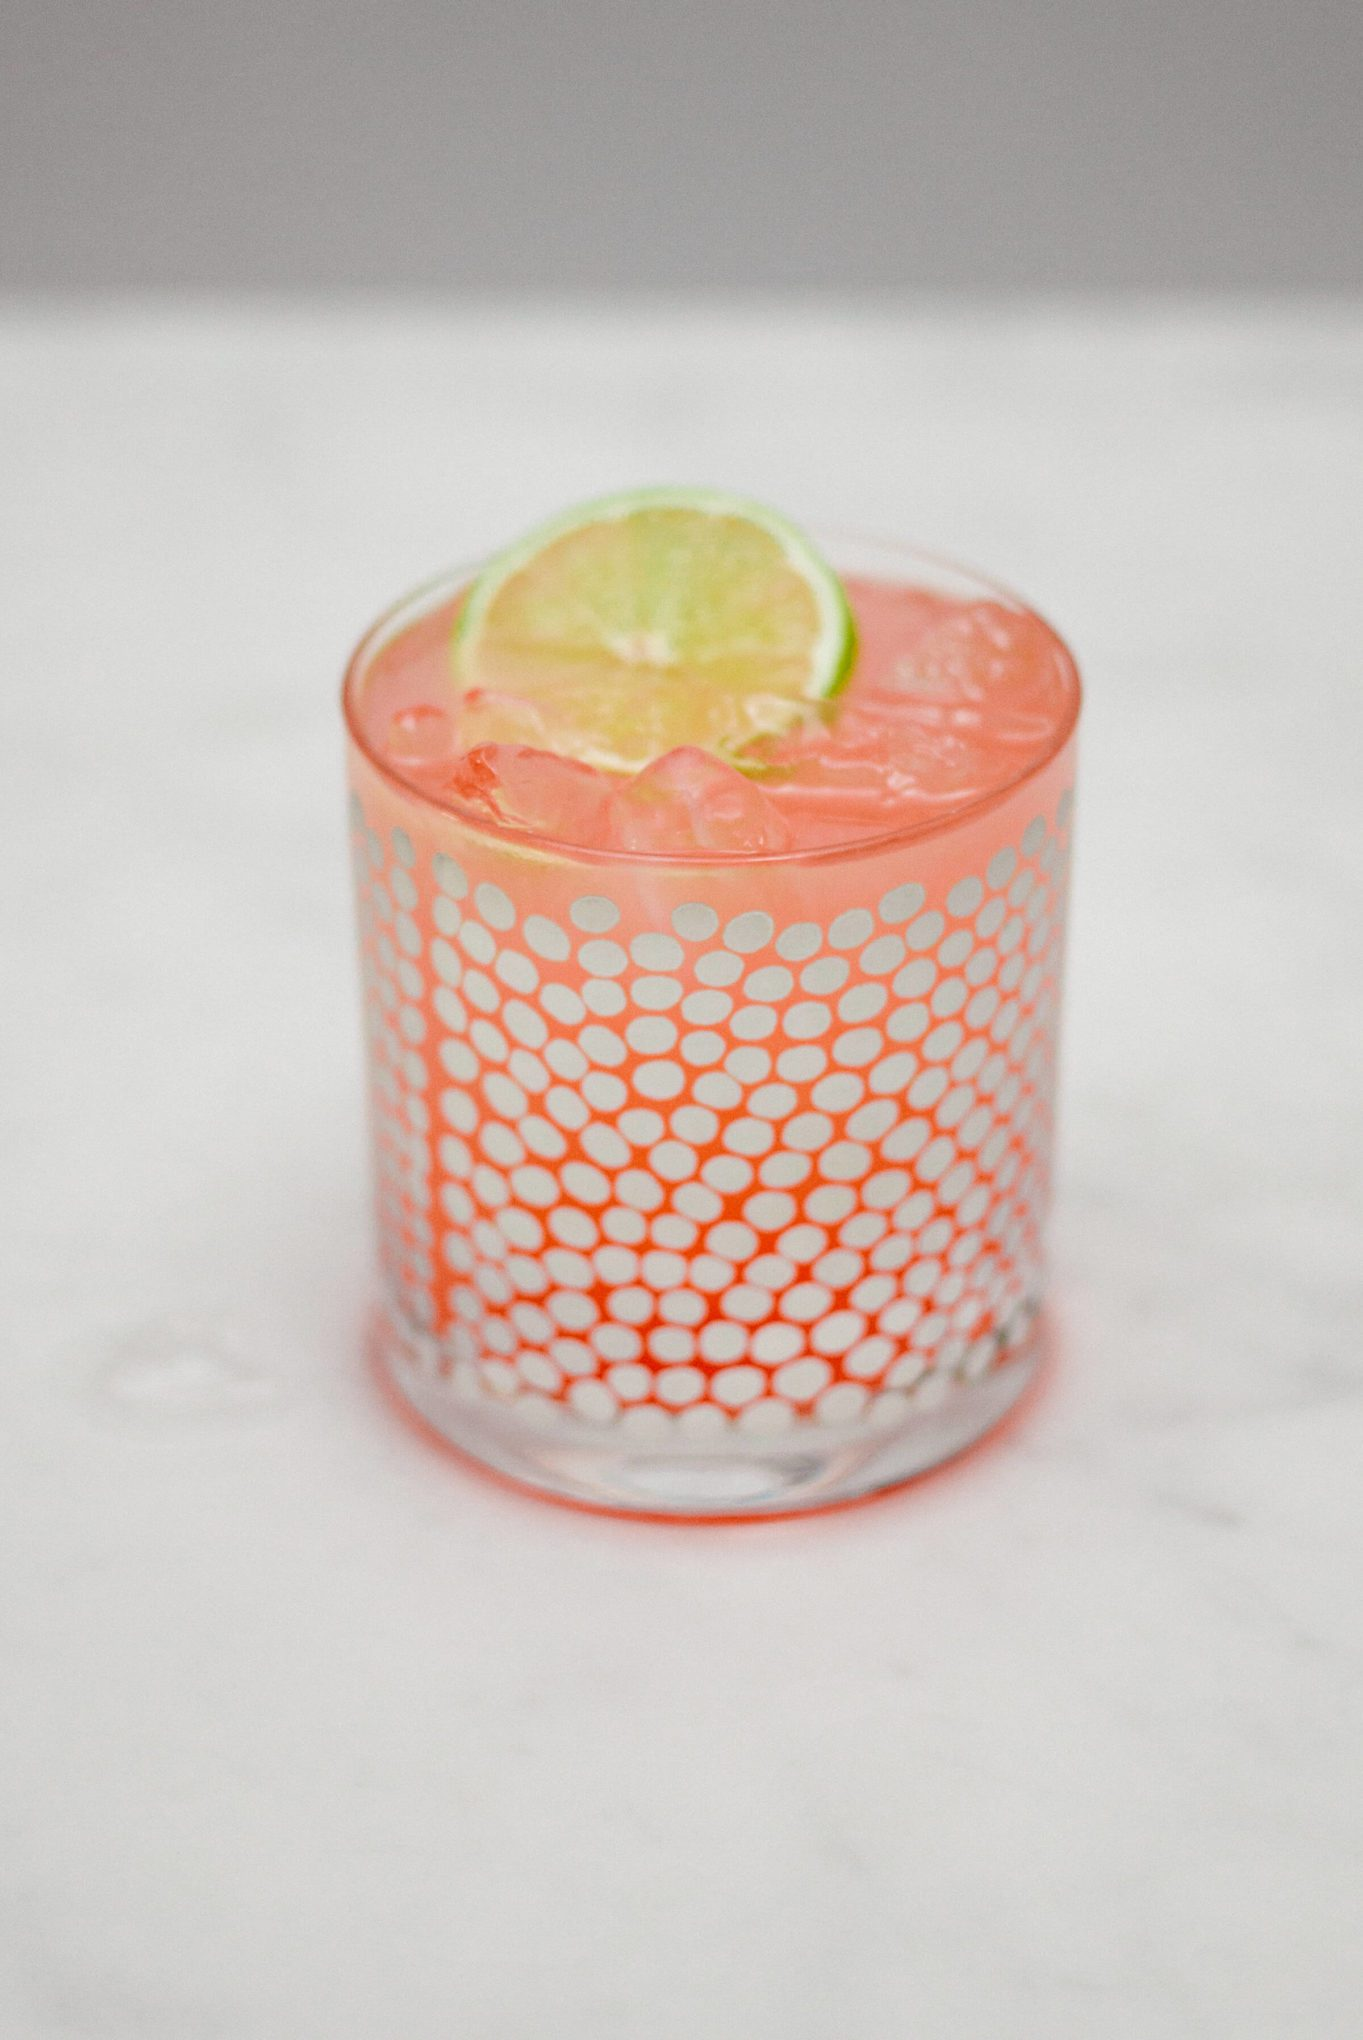 The Taste SF makes Paloma cocktails are easy and perfect for the summer